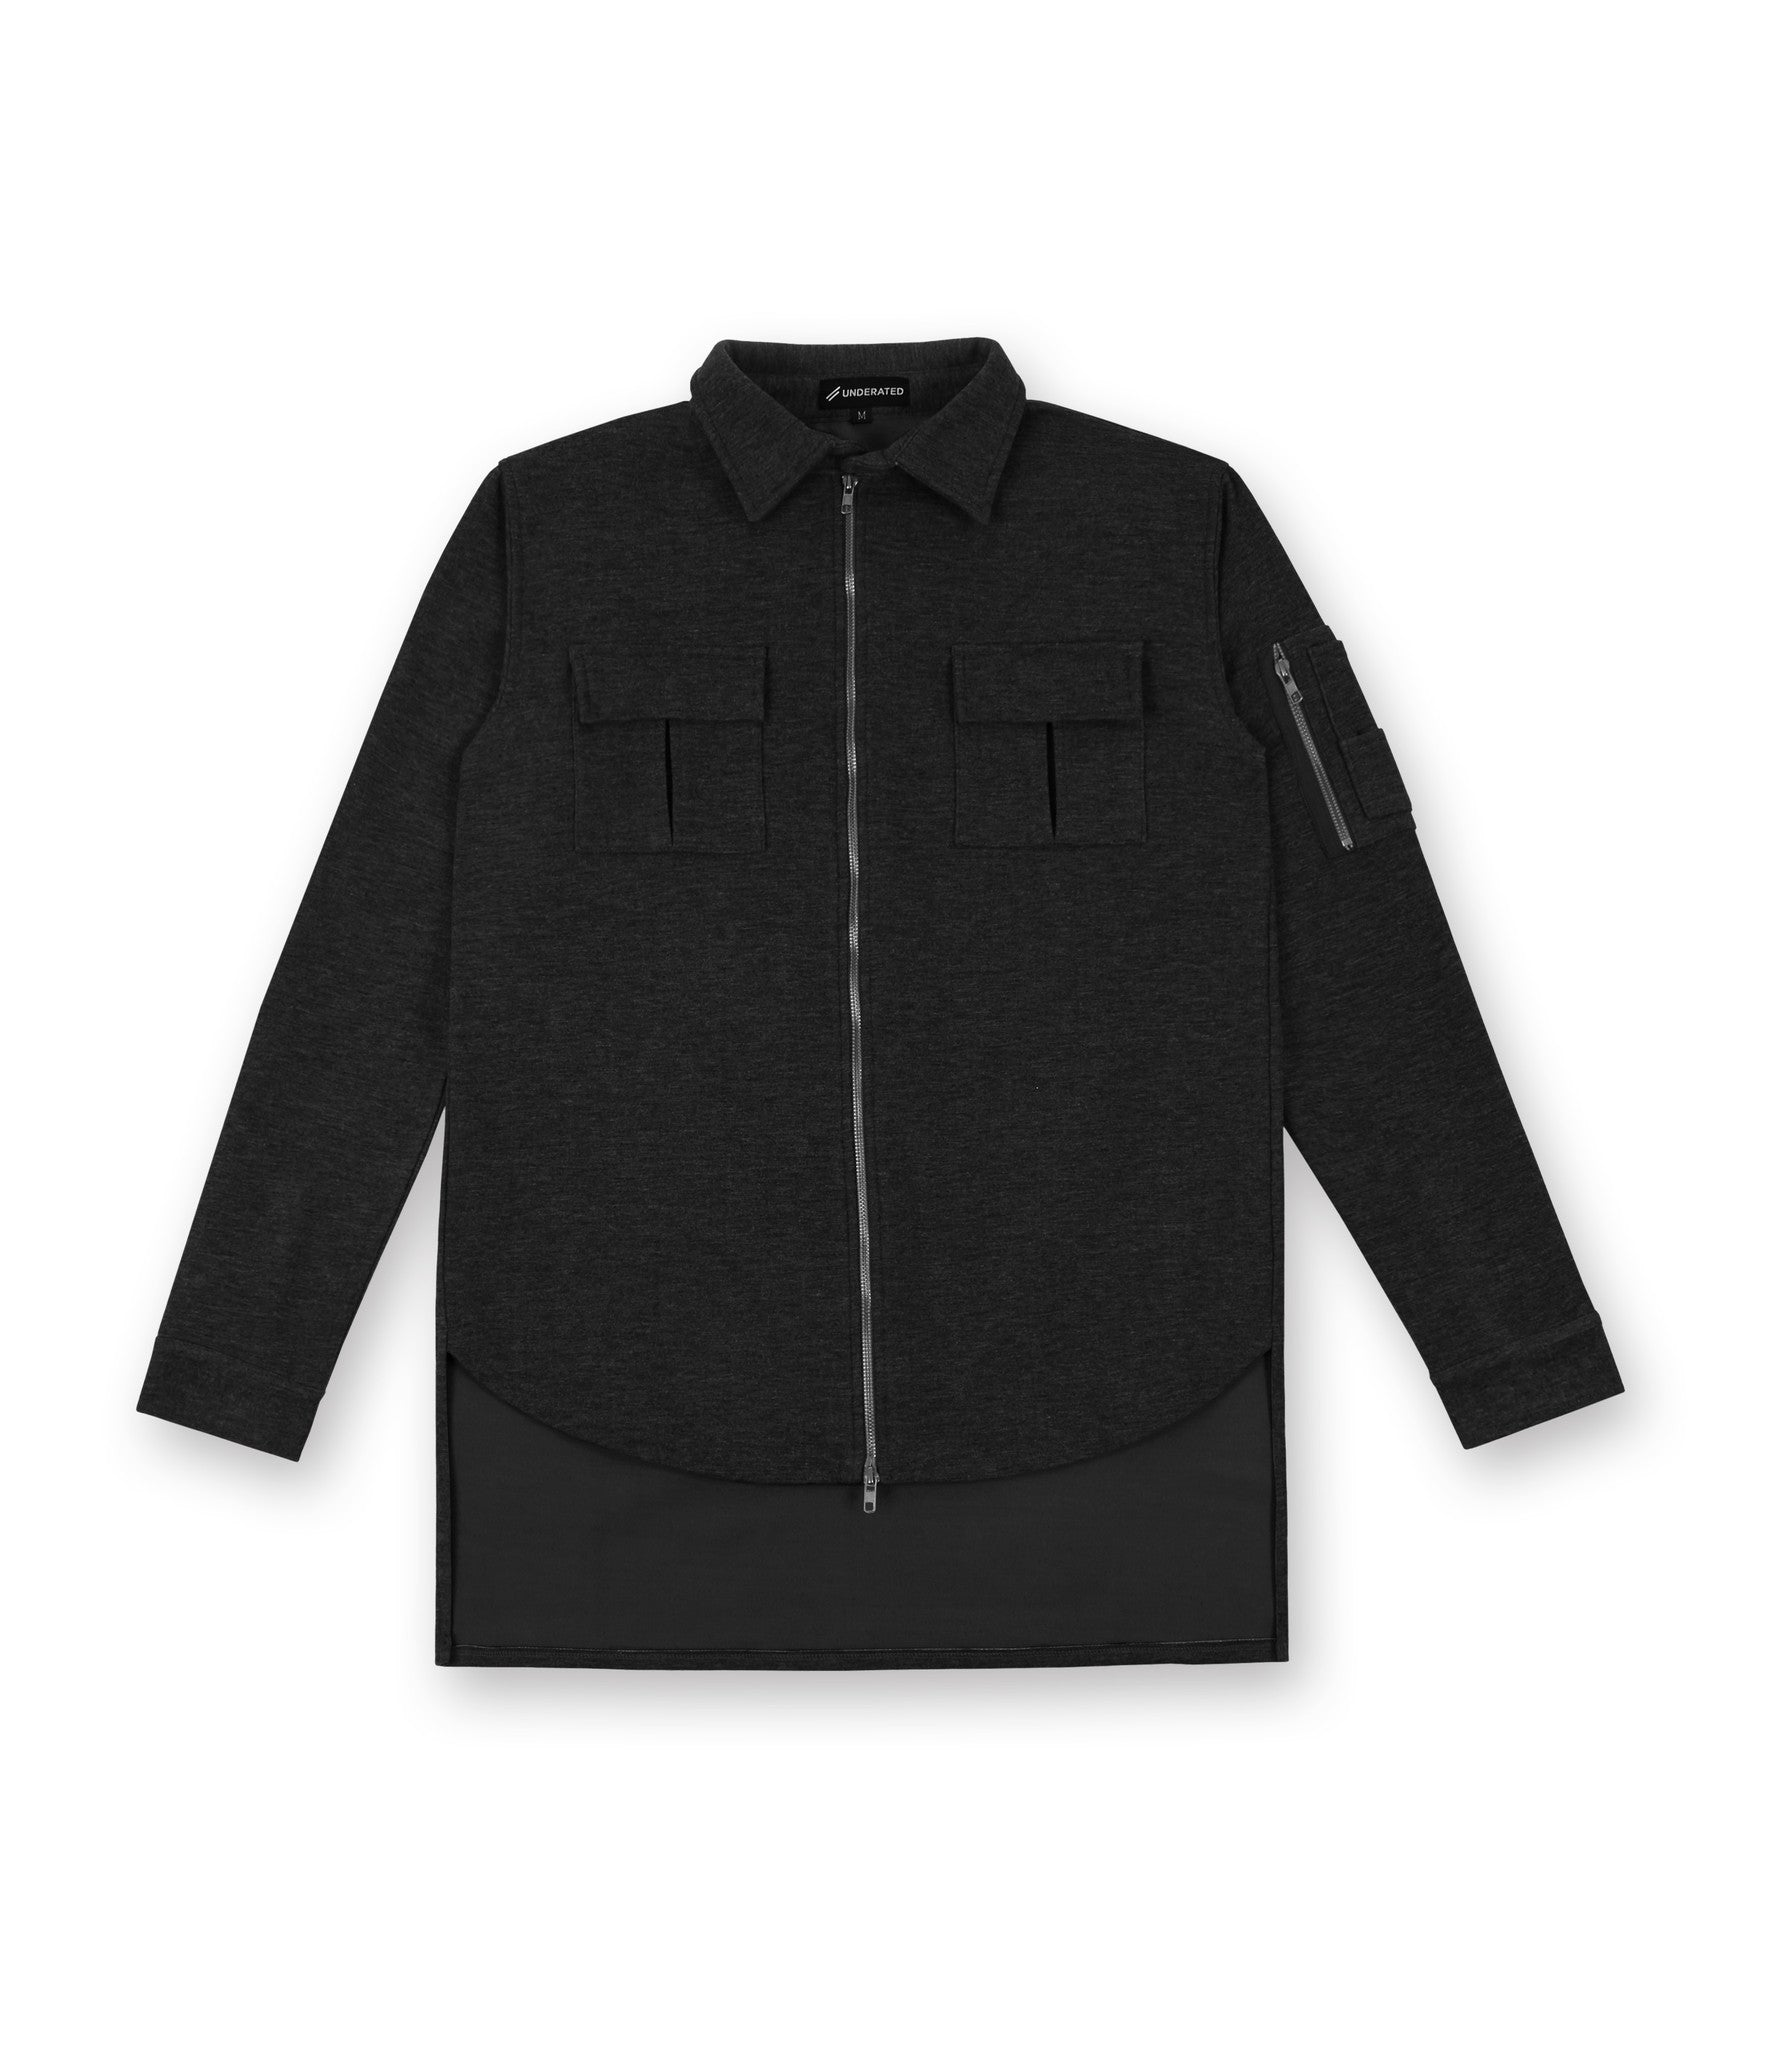 SH238 Wool Blend Utility Shacket - Black - underated london - underatedco - 2